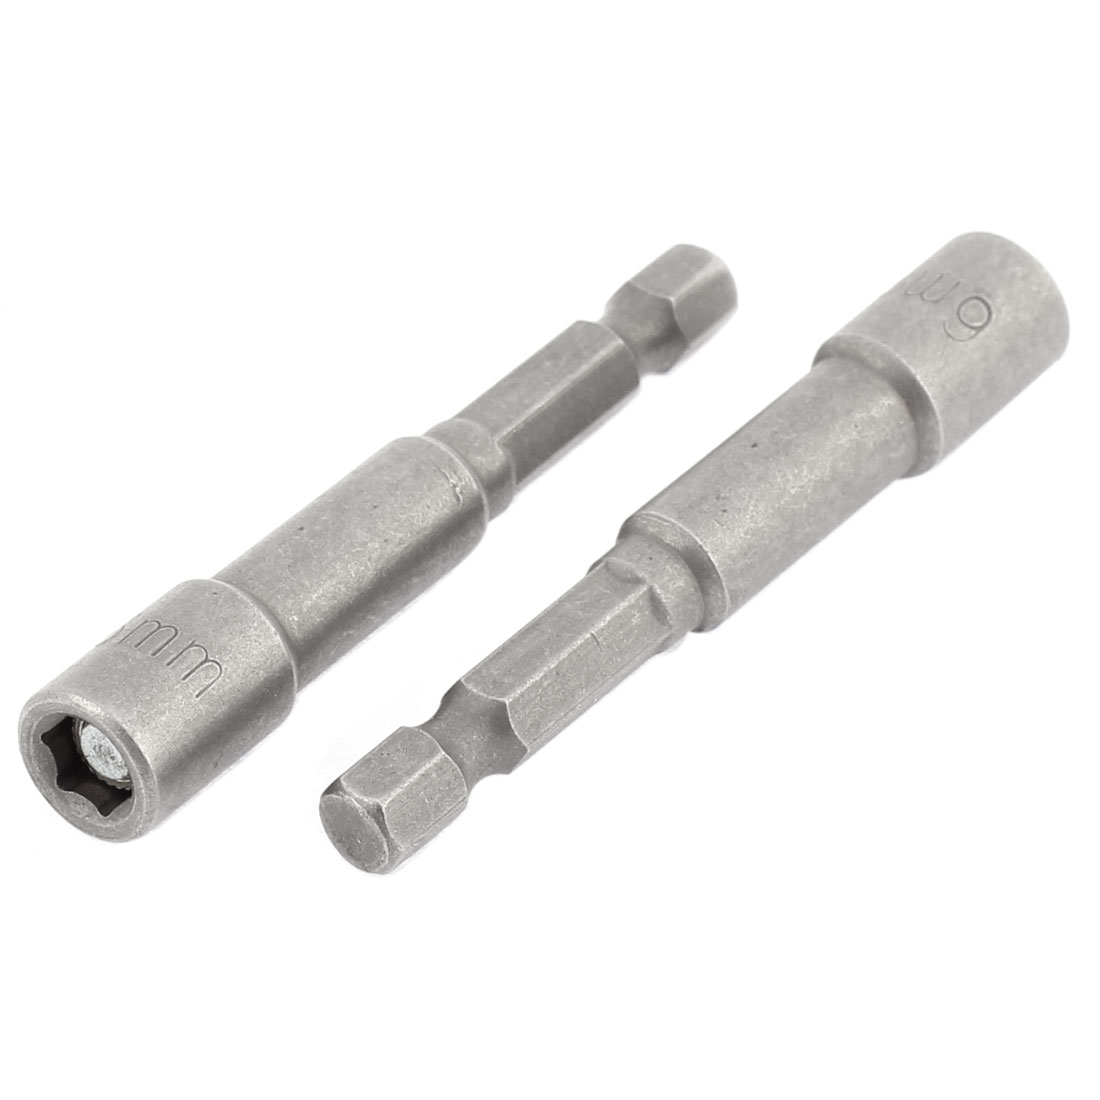 2 Pcs Gray 6mm Magnetic Hex Socket Impact Nut Setter Driver Bit Adapter